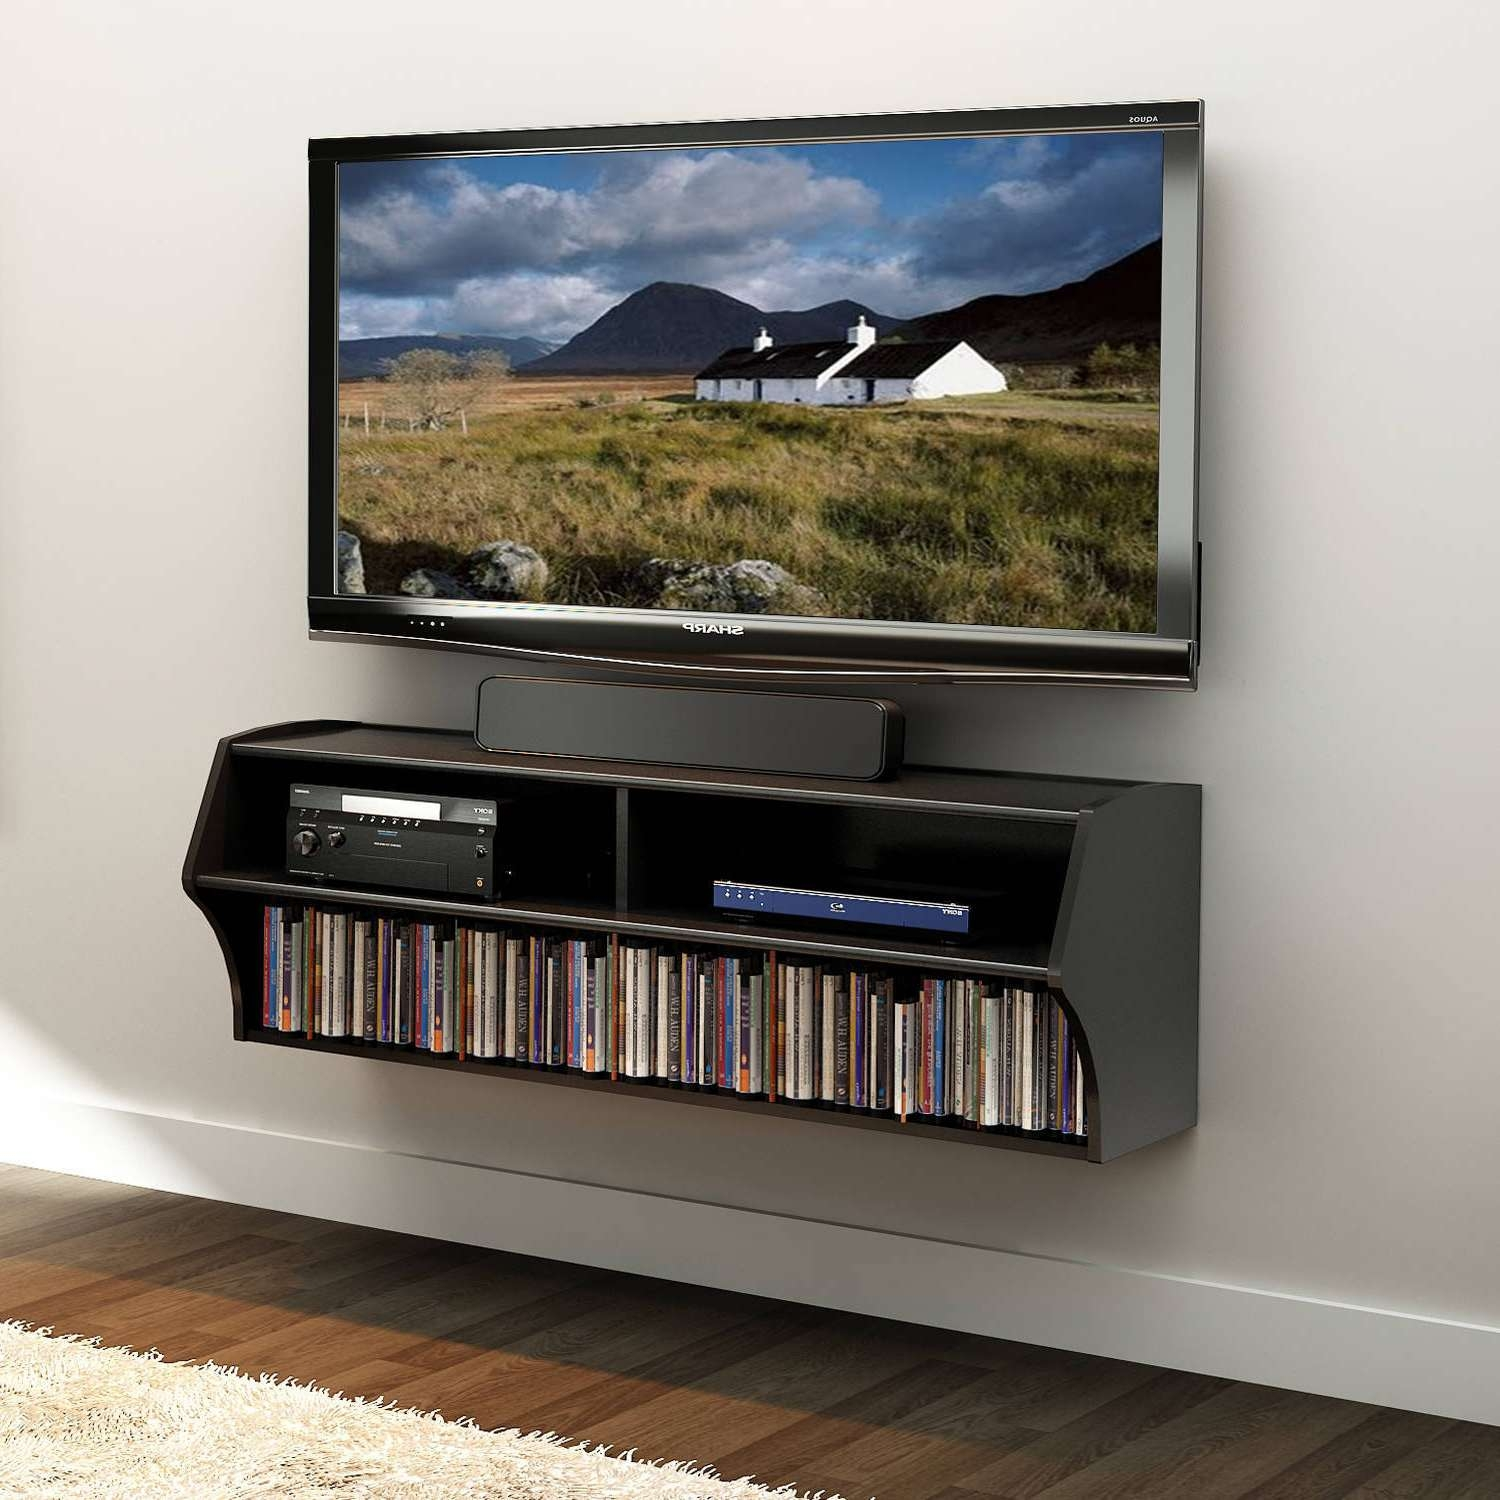 Tv : Bi Wonderful 24 Inch Wide Tv Stands Amazon Com Simpli Home For 24 Inch Tall Tv Stands (View 7 of 15)